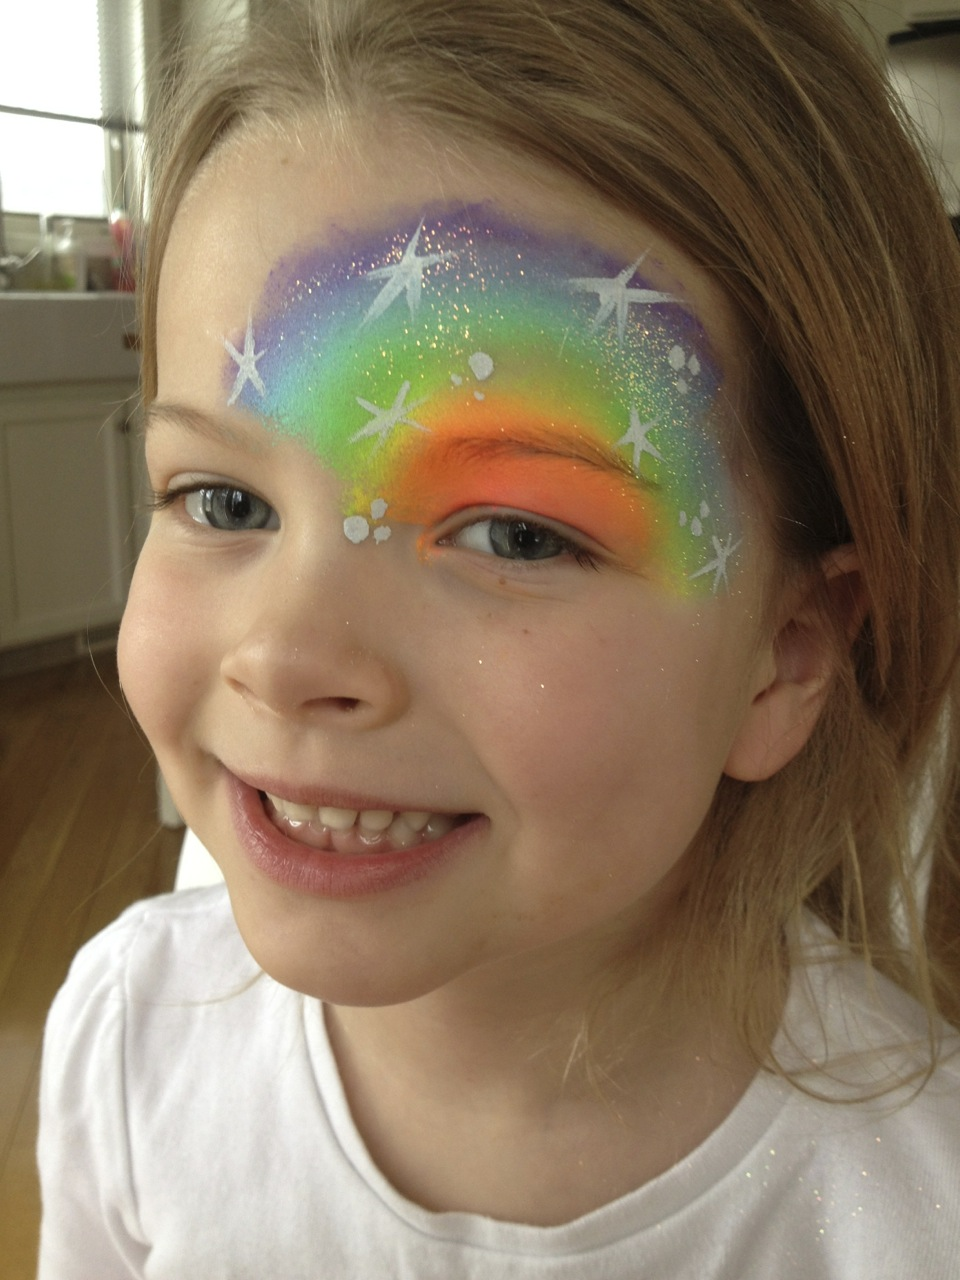 neon-rainbow-half-face-mask-fancy-faces-facepainting-calgary-white-stars-dots-gi